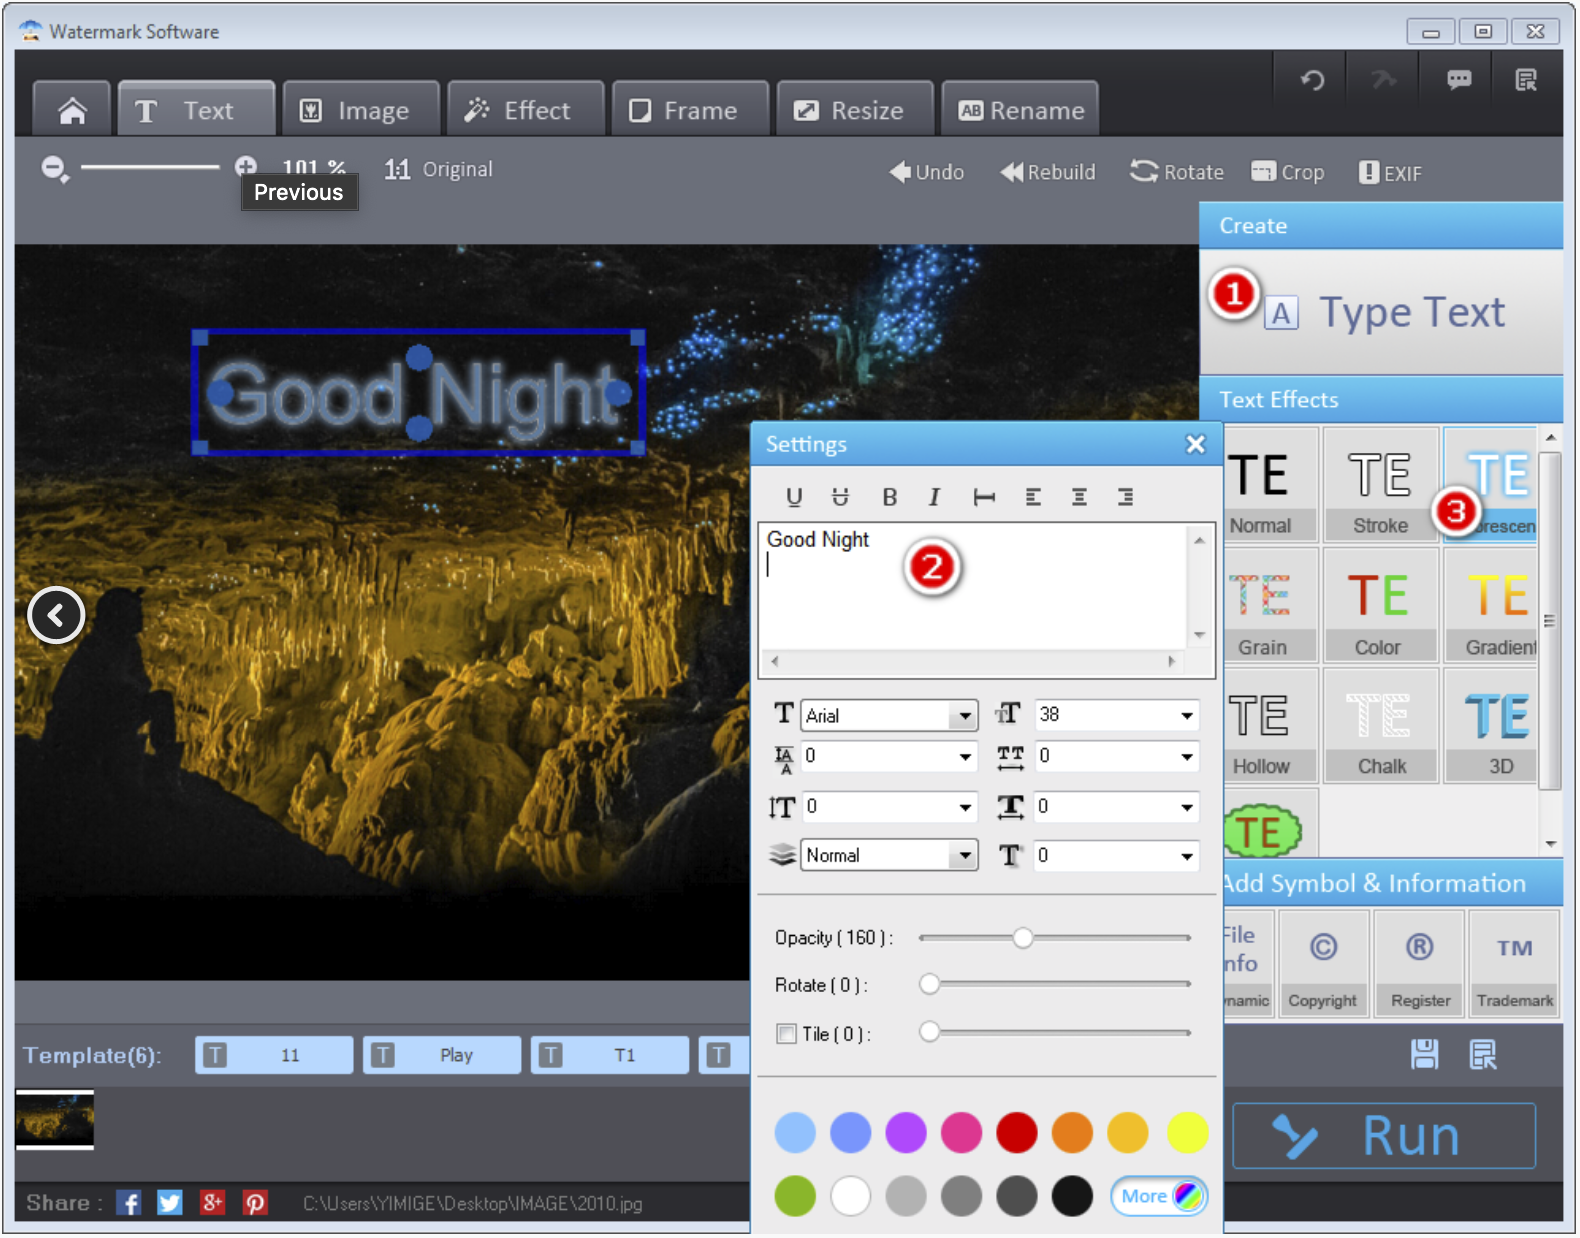 Free Giveaway Photo Watermark Software v8.2 Registration Code - Add text Watermark